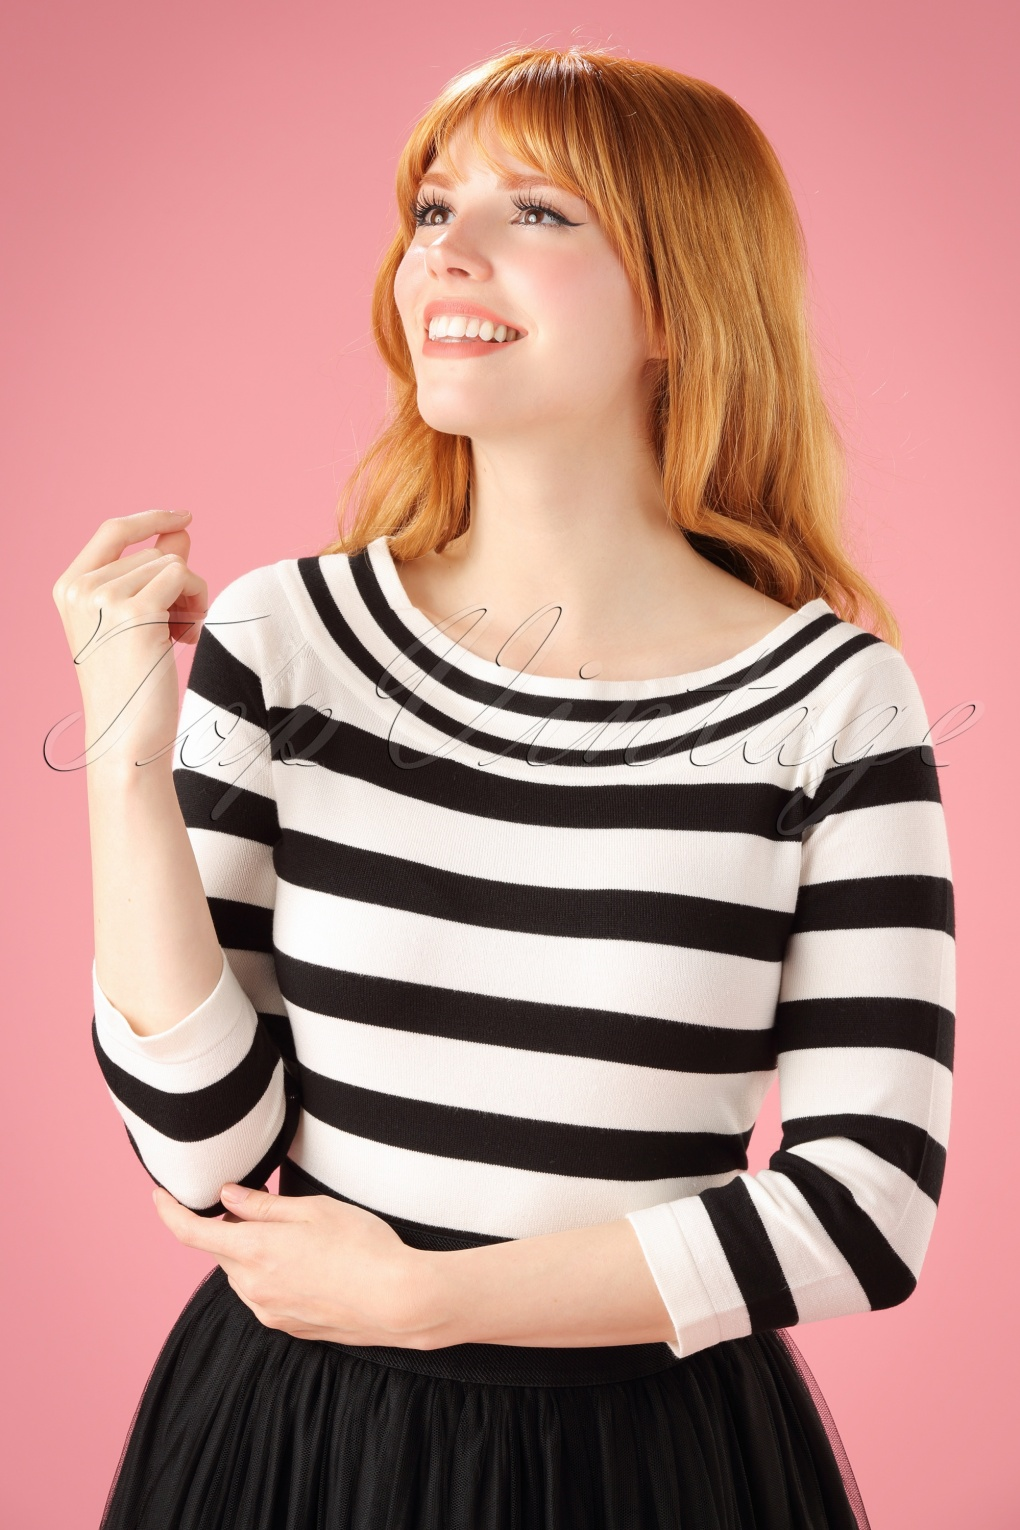 Vintage & Retro Shirts, Halter Tops, Blouses 50s Ahoi Stripes Top in Black and White £18.04 AT vintagedancer.com